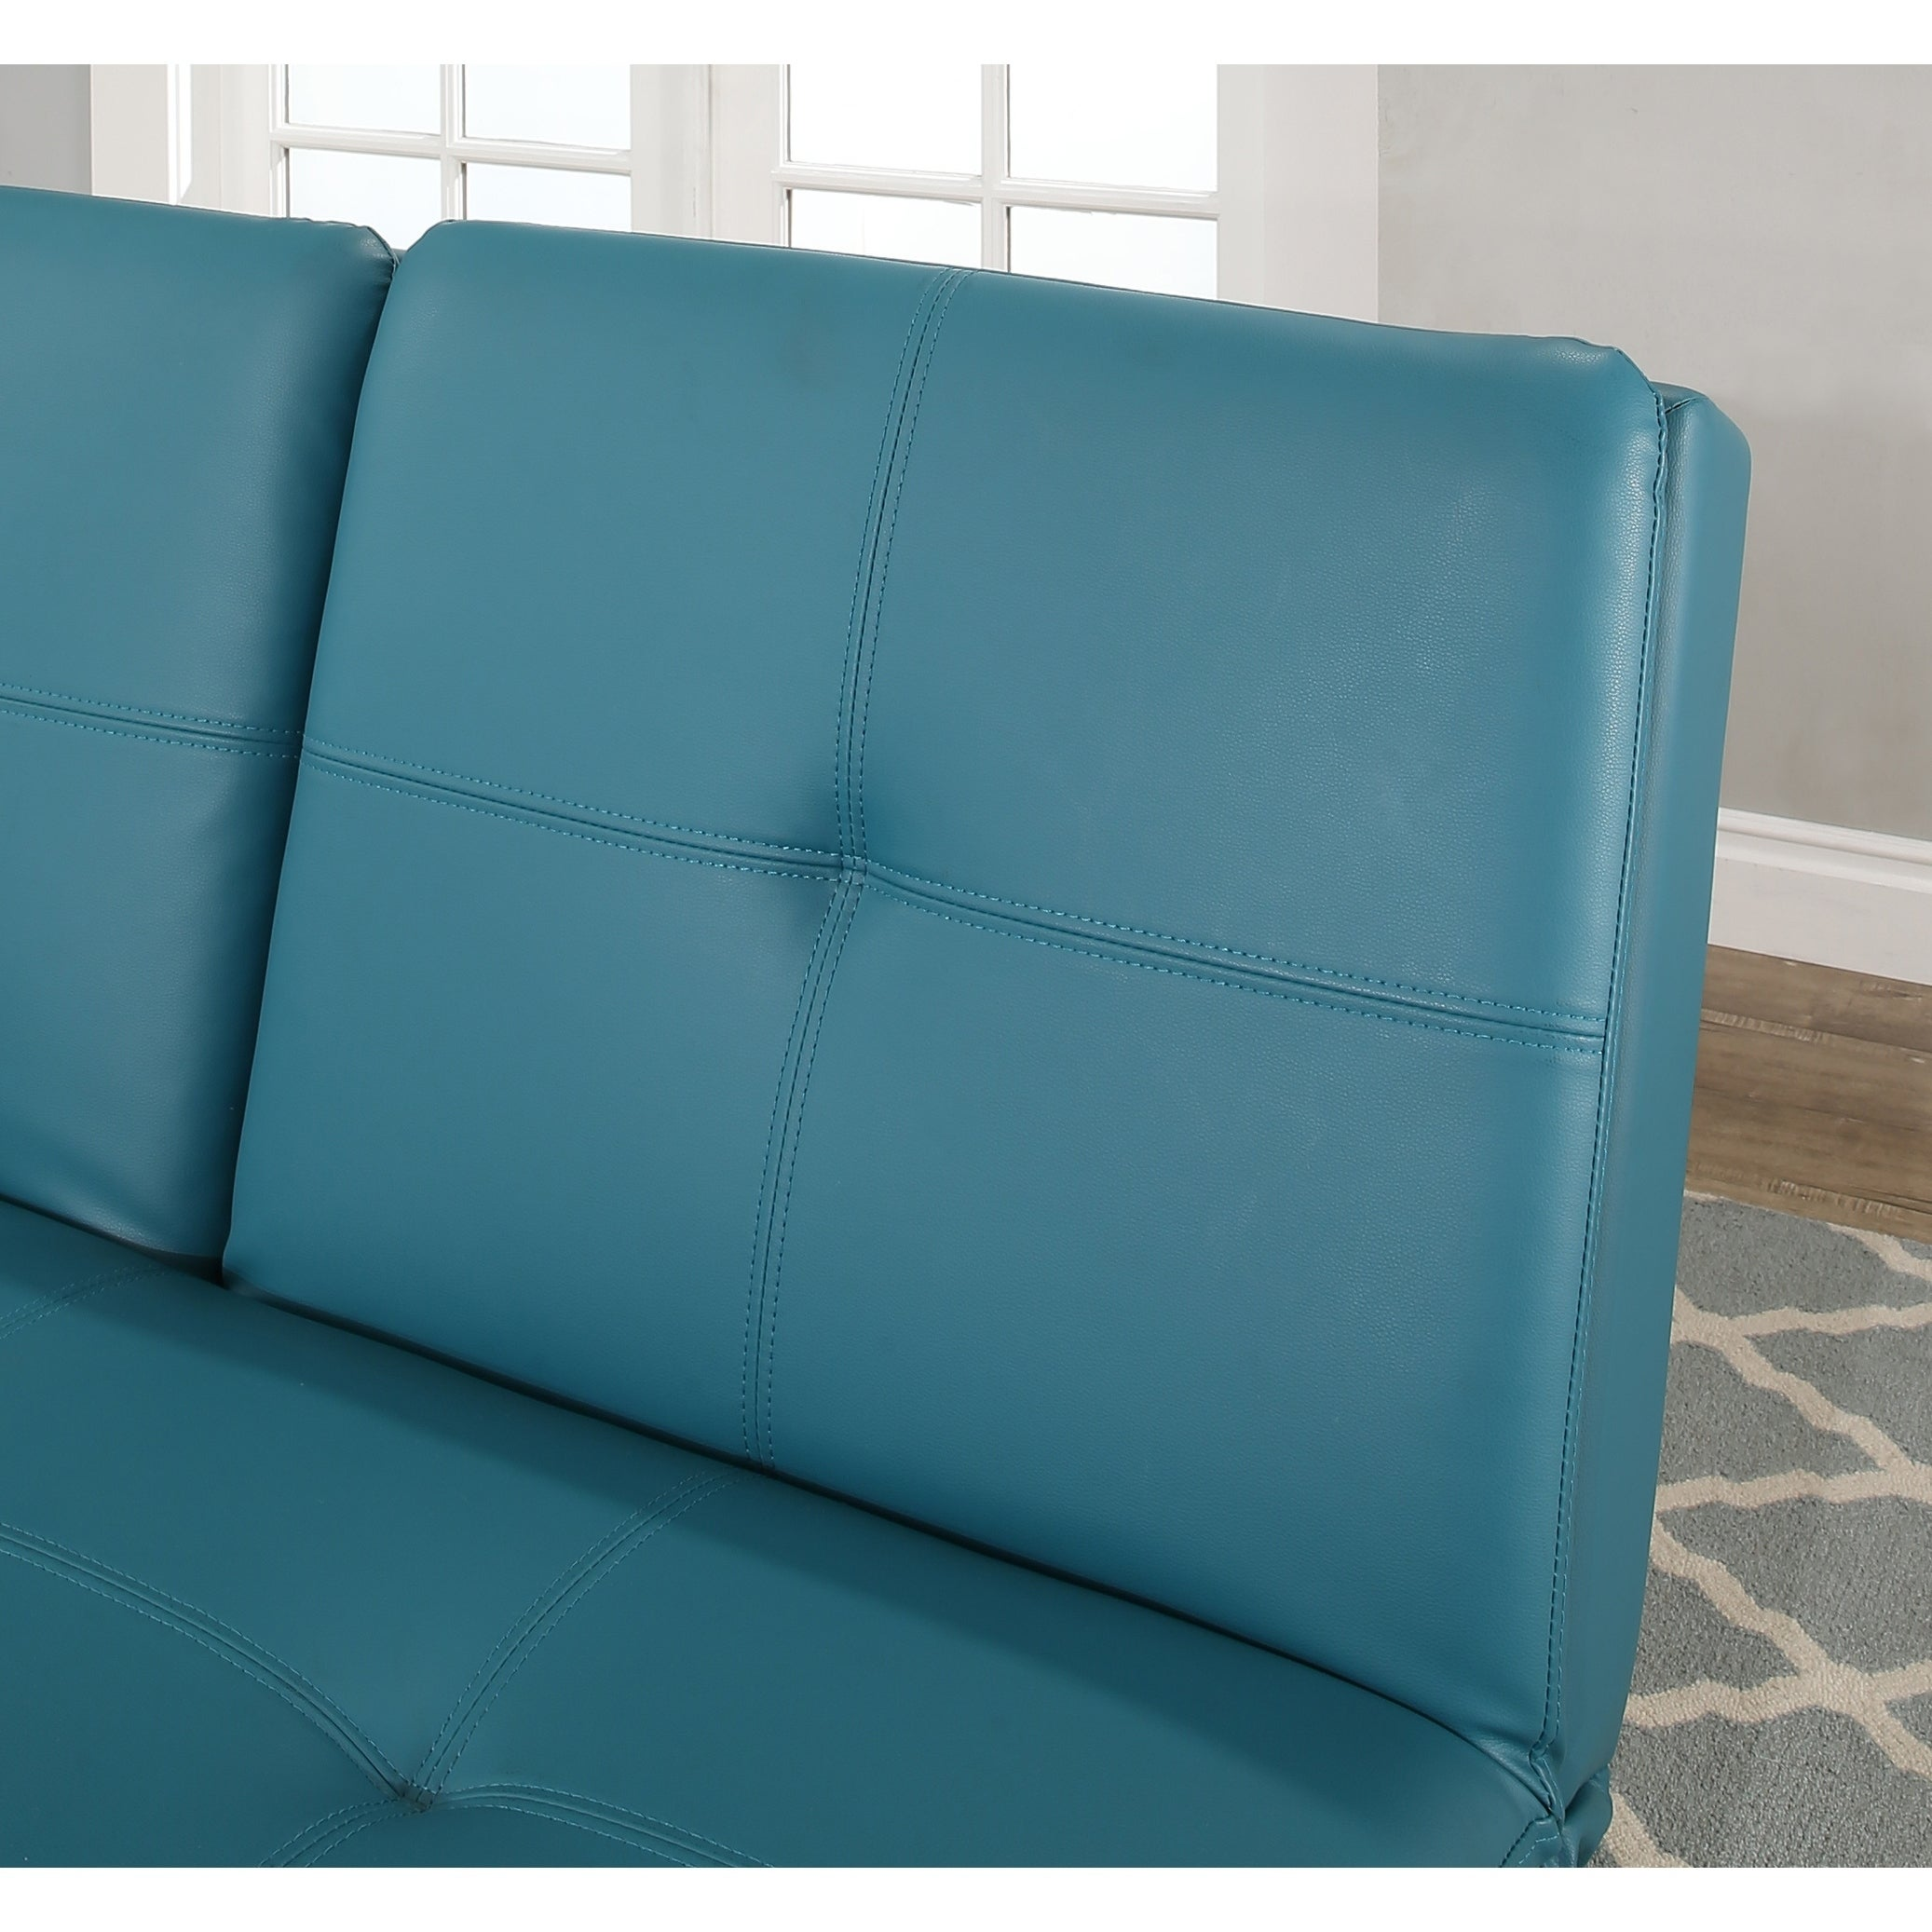 Abbyson Kilby Turquoise Bonded Leather Sofa Bed With Console   Free  Shipping Today   Overstock   25433543